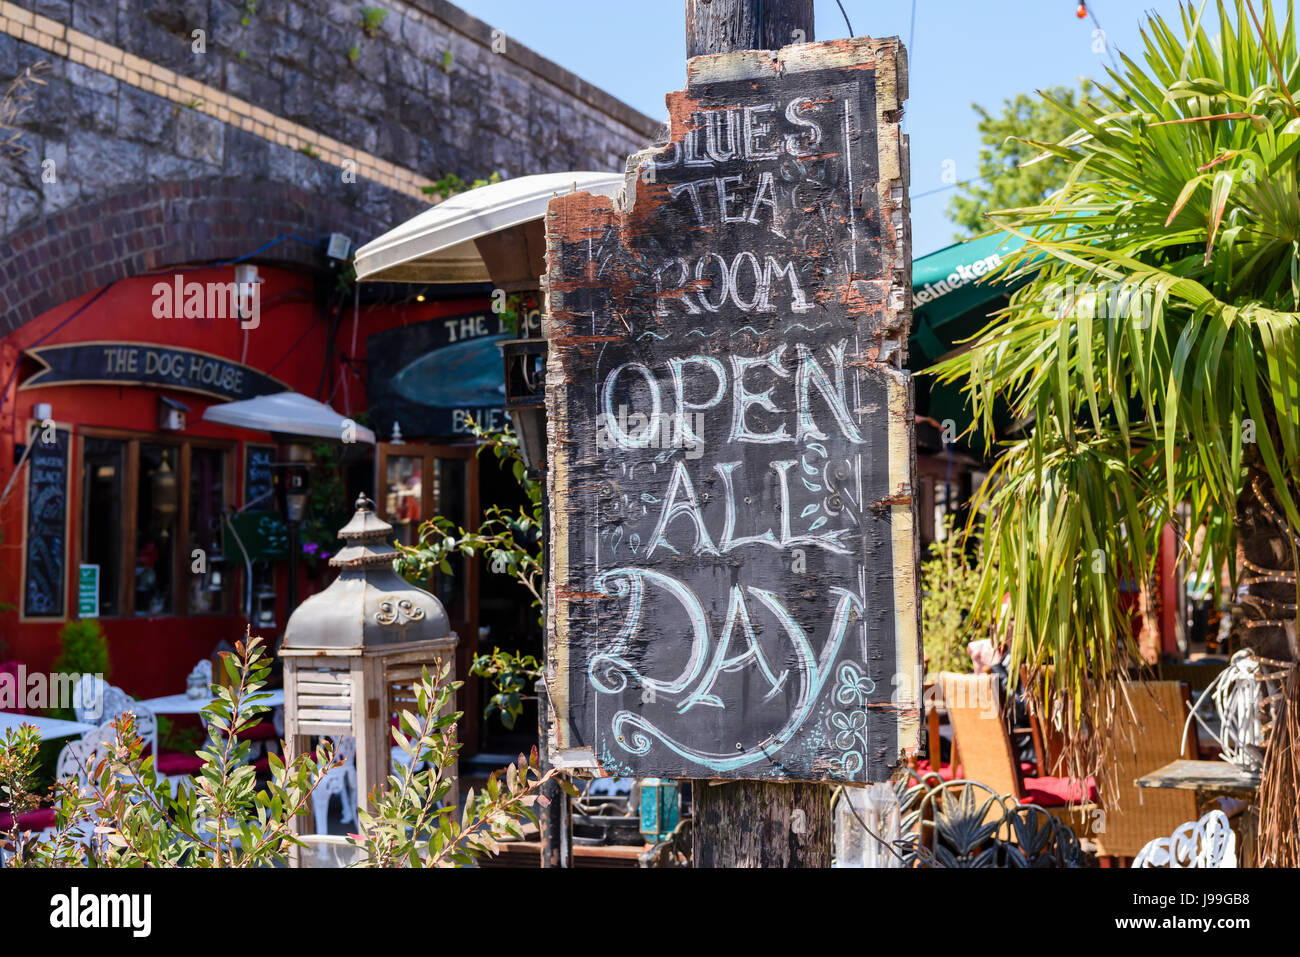 Sign saying 'Blues Tea Room - Open all day'. - Stock Image